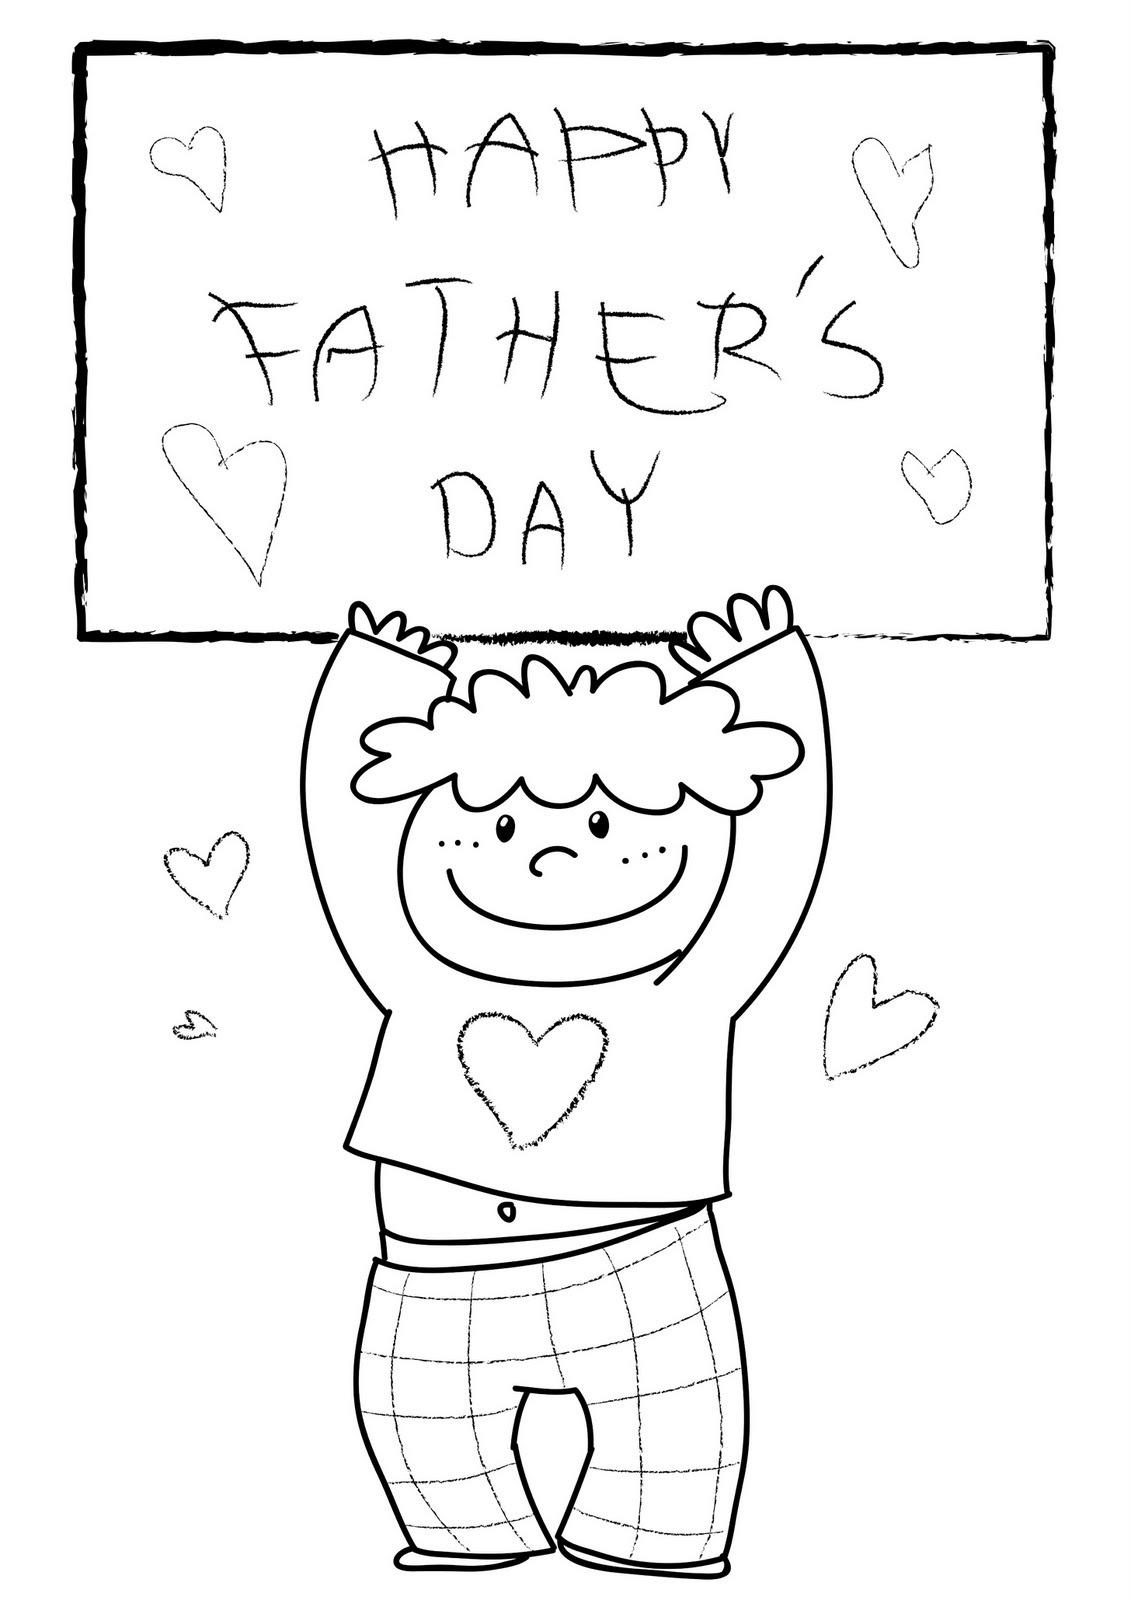 Proverbs 31 Mommy And Wife Some Cute Father S Day Printable Coloring Sheets